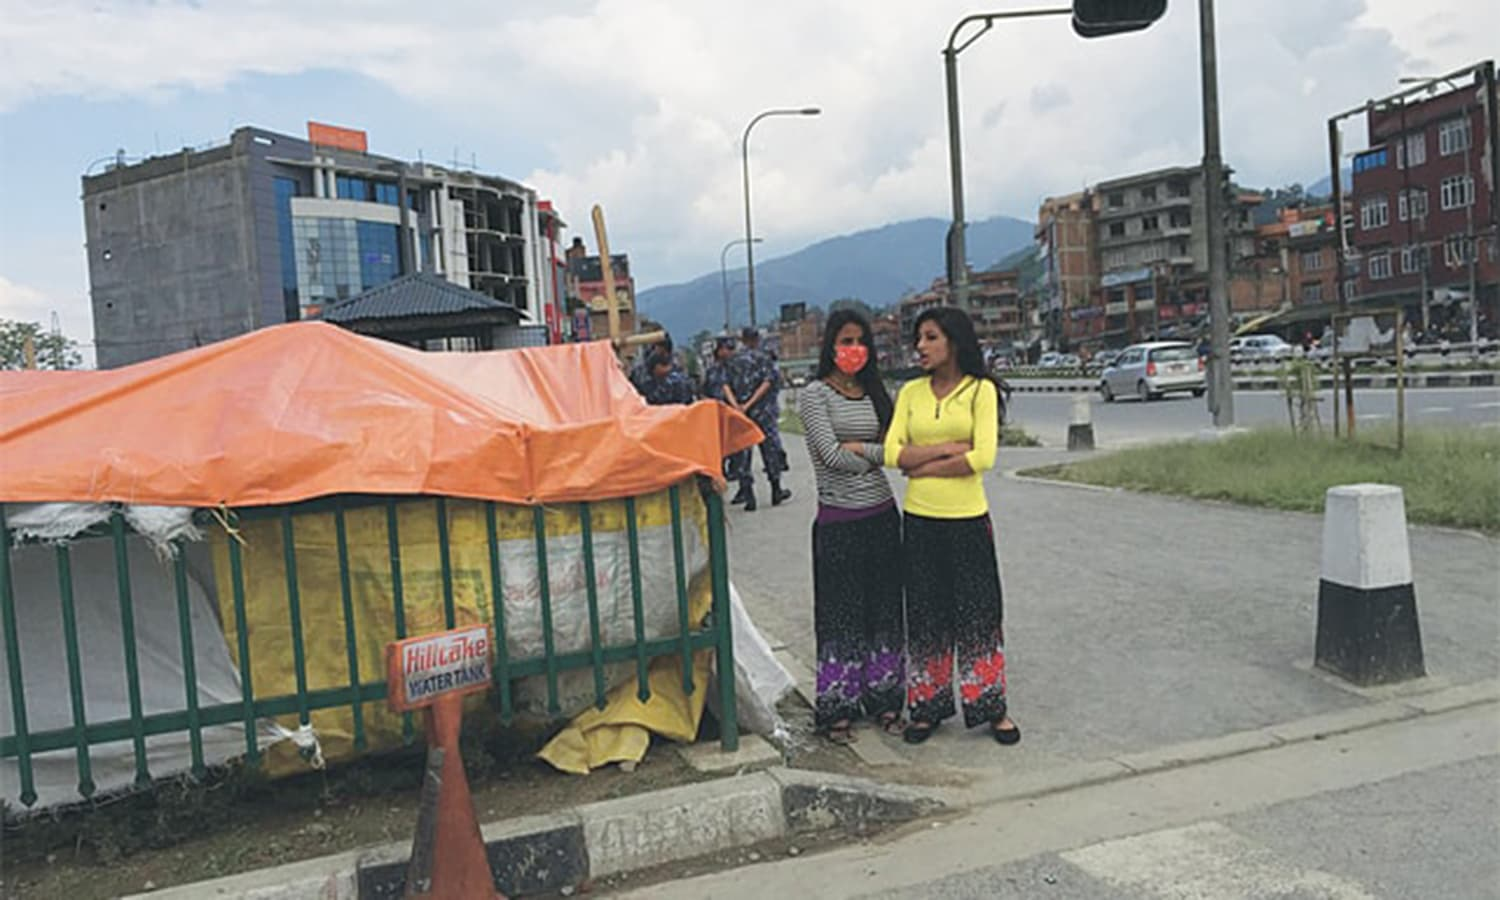 As rescue camps started taking over the urban landscape, even roundabouts, of Bakhtapur, everyday life for others continued side by side, but with some precautions